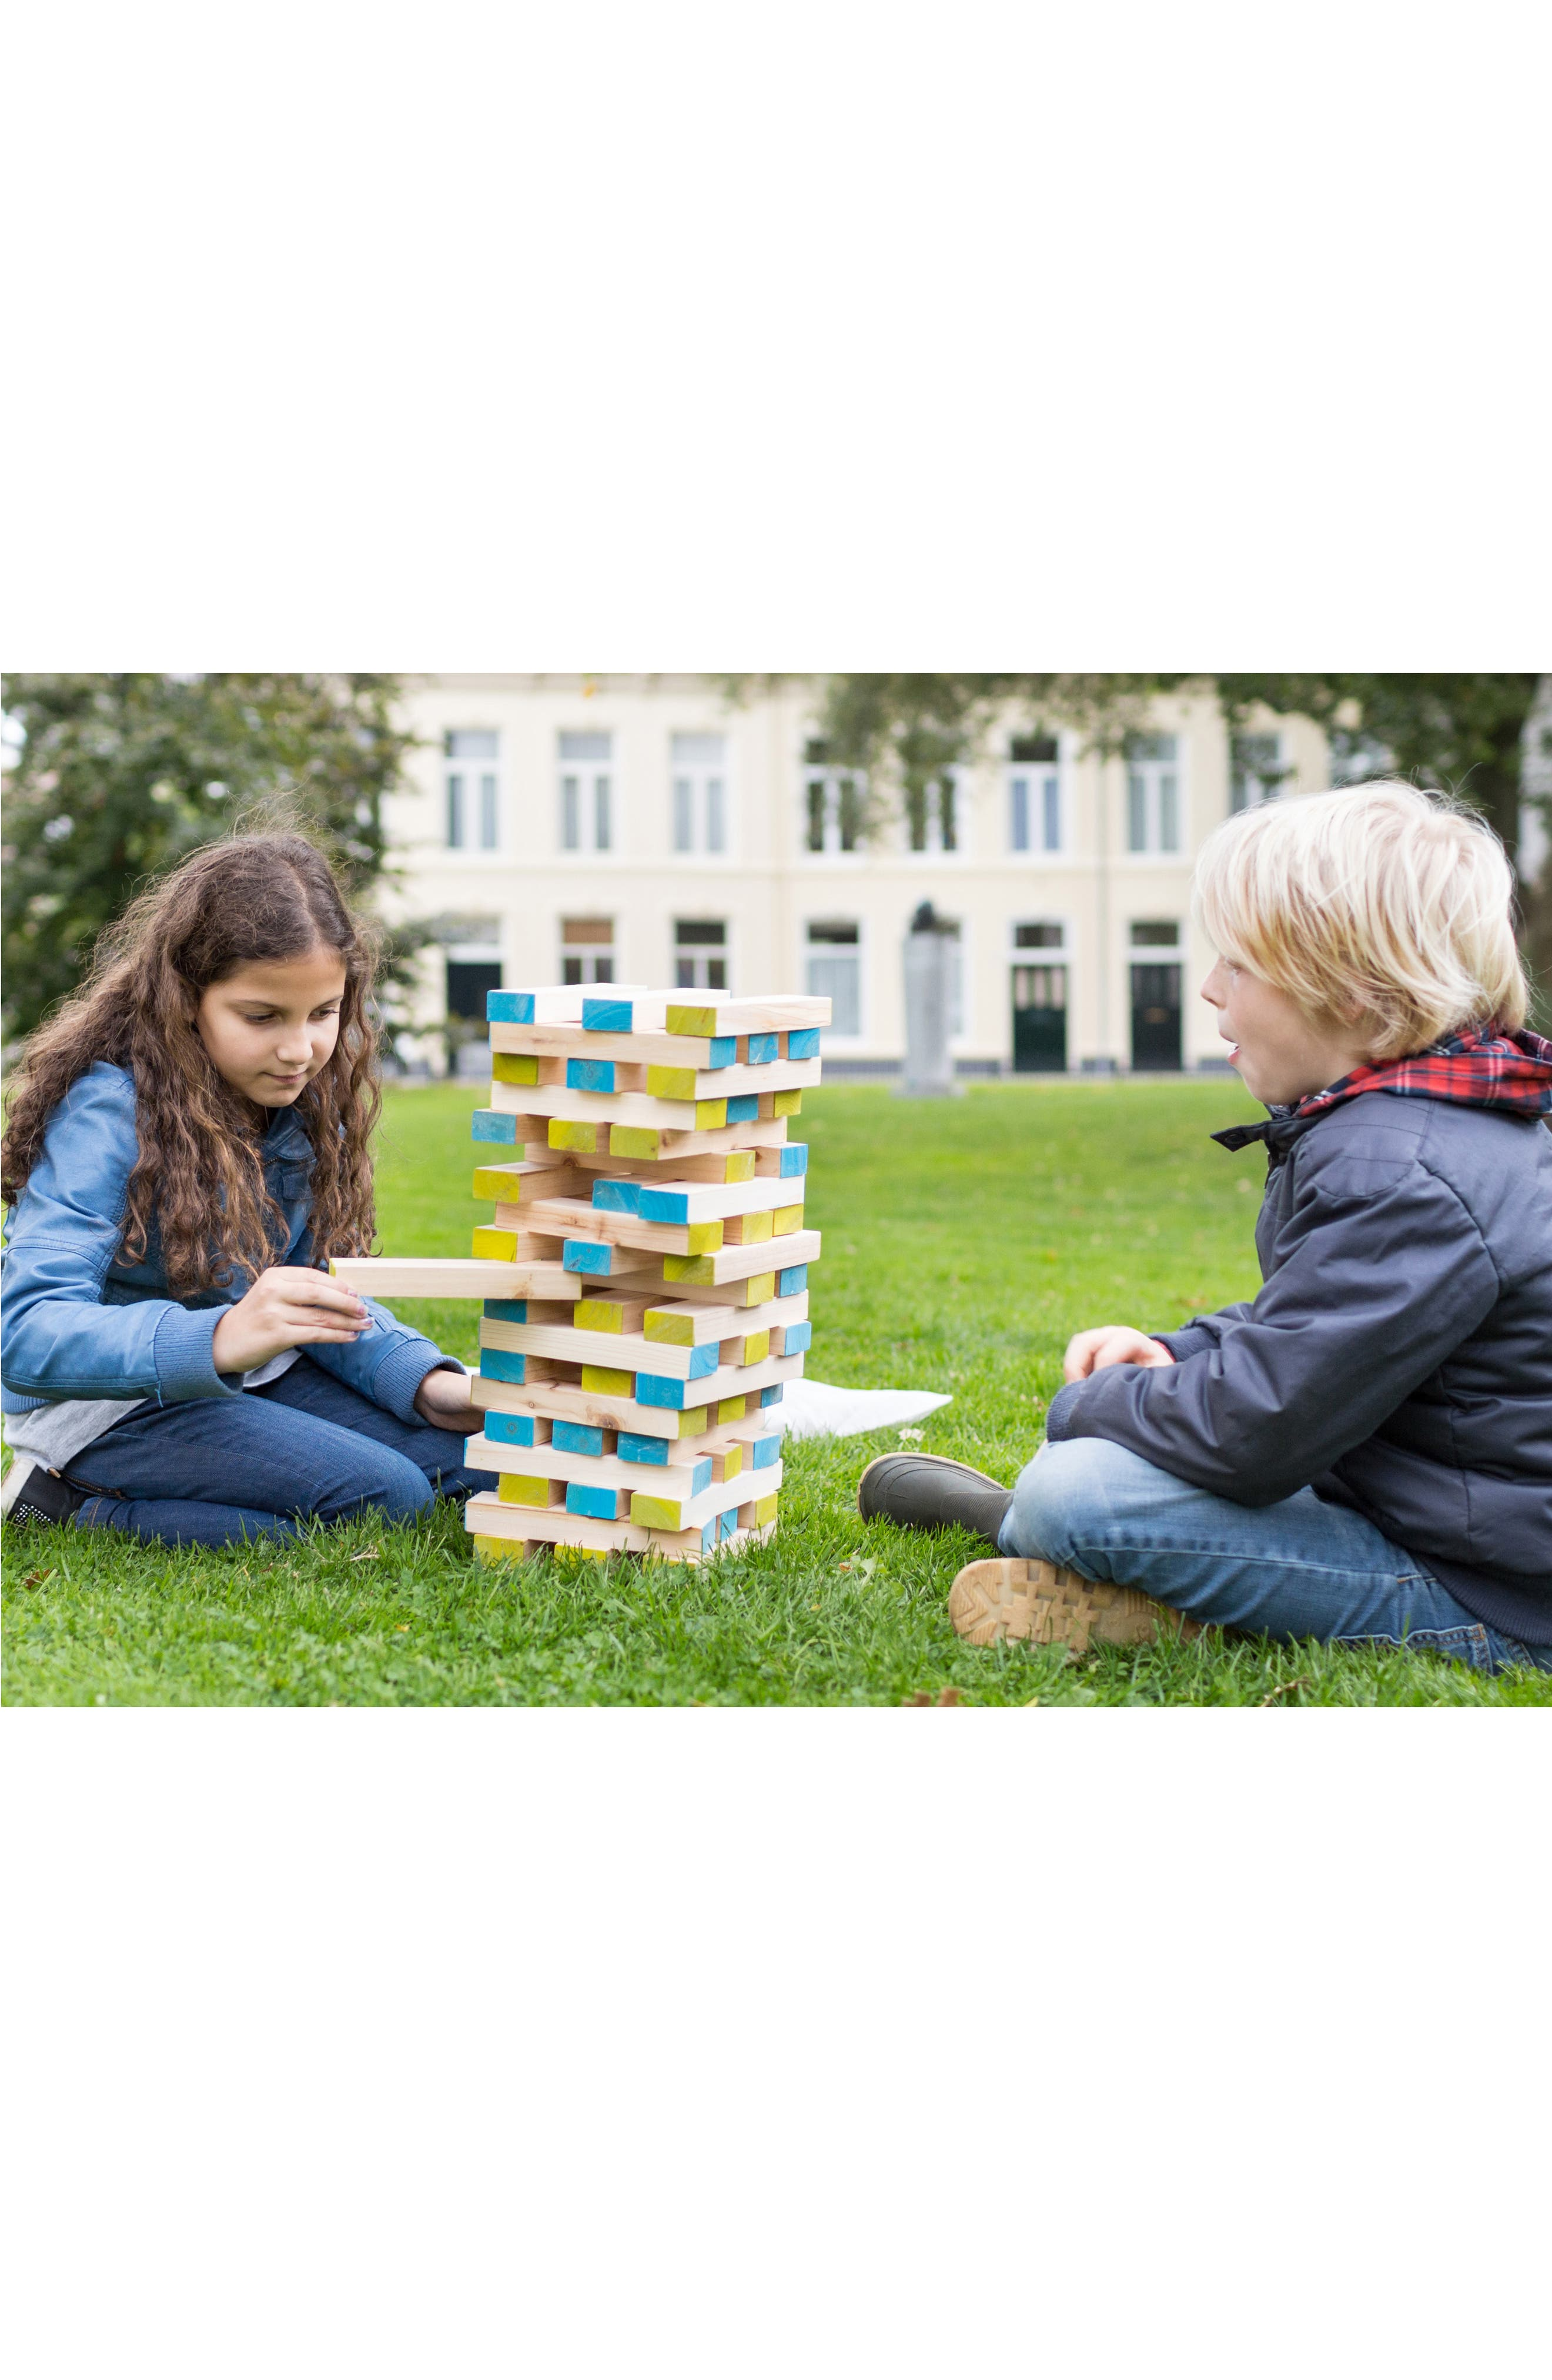 Large Wood Block Tower Toy,                             Alternate thumbnail 5, color,                             GREEN